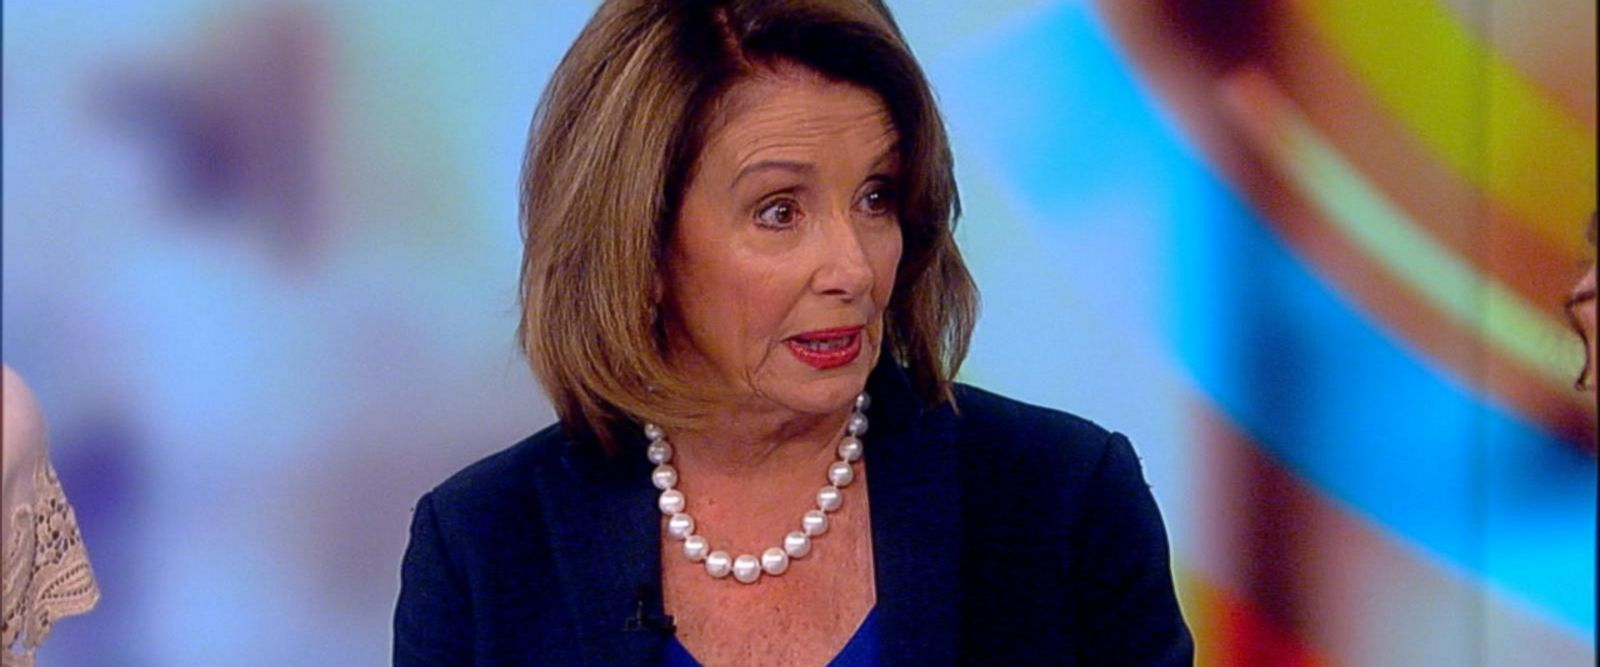 VIDEO: Nancy Pelosi on dinner with Trump and Schumer